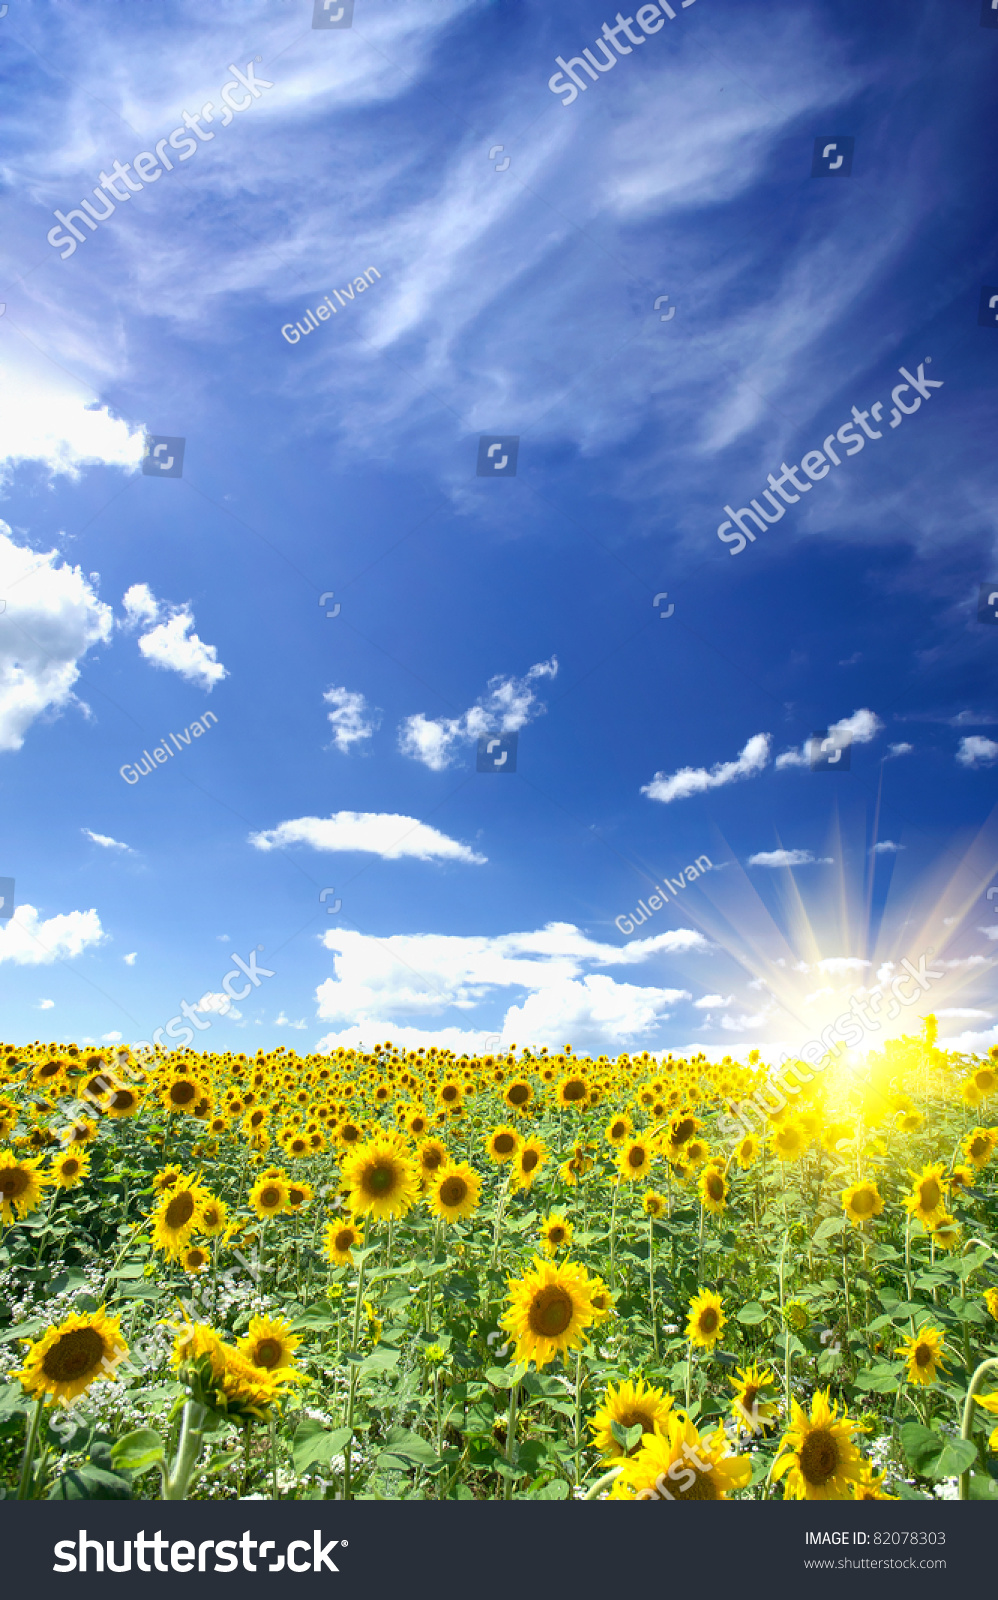 Wonderful Summer Field Of Sunflowers And Sun In The Blue ...